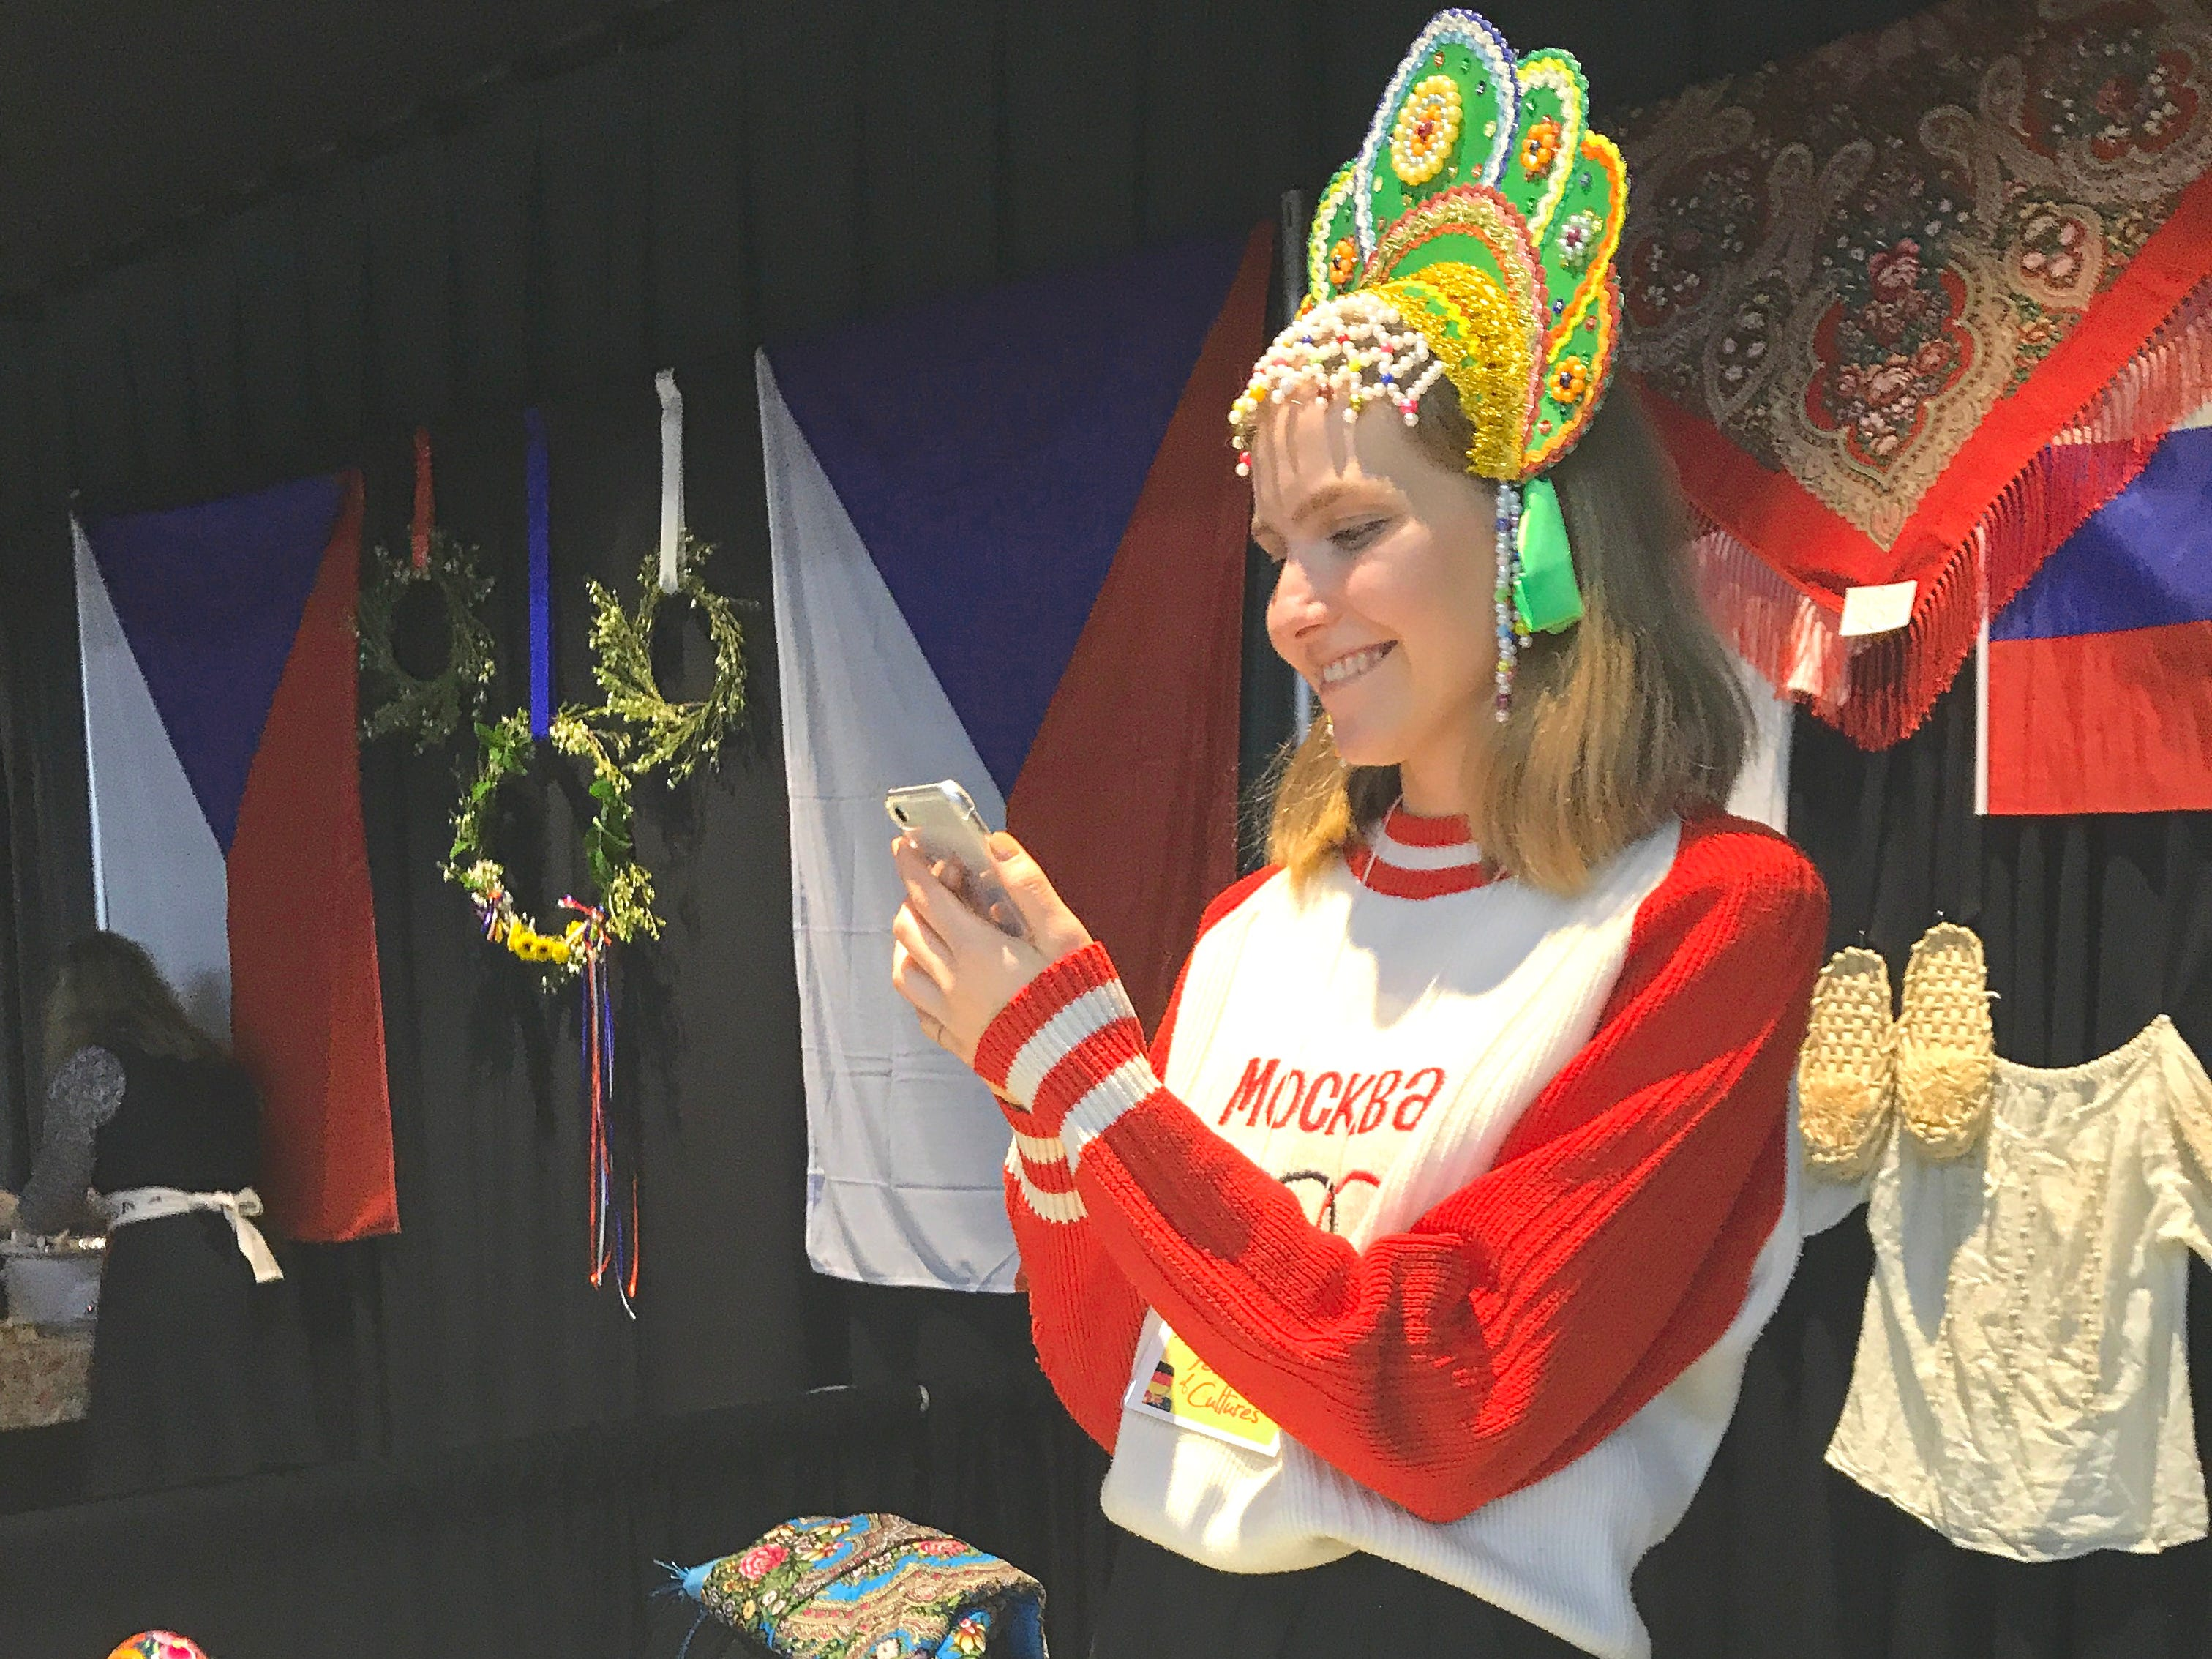 Maria Belyakova of Russia gets ready to serve samples of her country's potato salad that also had eggs, pickles, peas and Russian bologna. She and other international students from the Bethel School of Supernatural Ministry participated in the 10th annual Festival of Cultures hosted by the church in the Redding Civic Auditorium on Feb. 9, 2019.